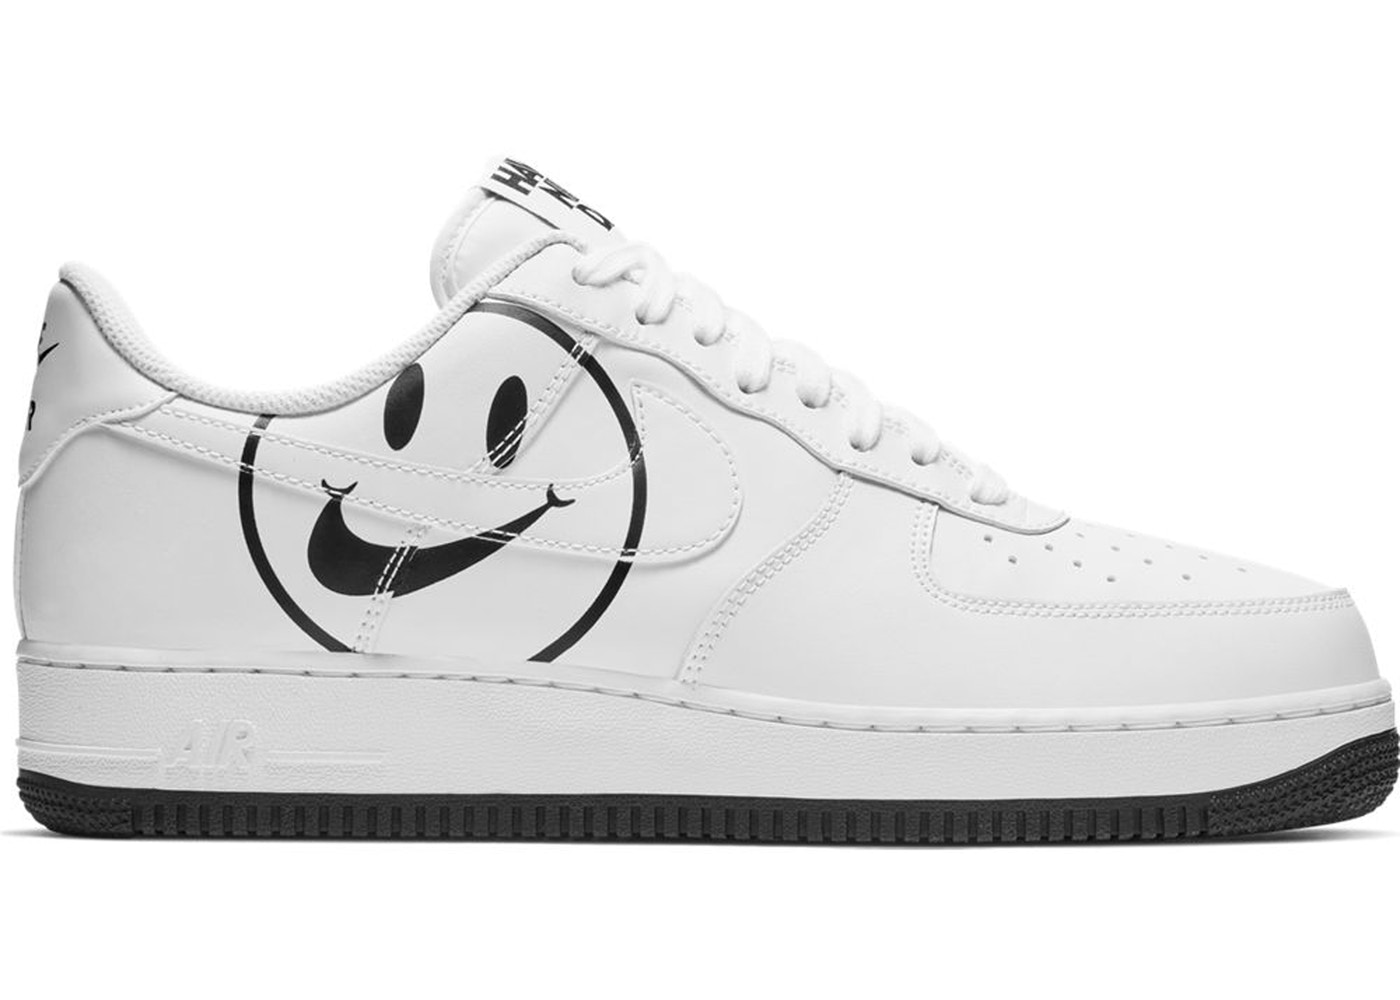 cheaper 758b7 220c2 Air Force 1 Low Have A Nike Day White - BQ9044-100